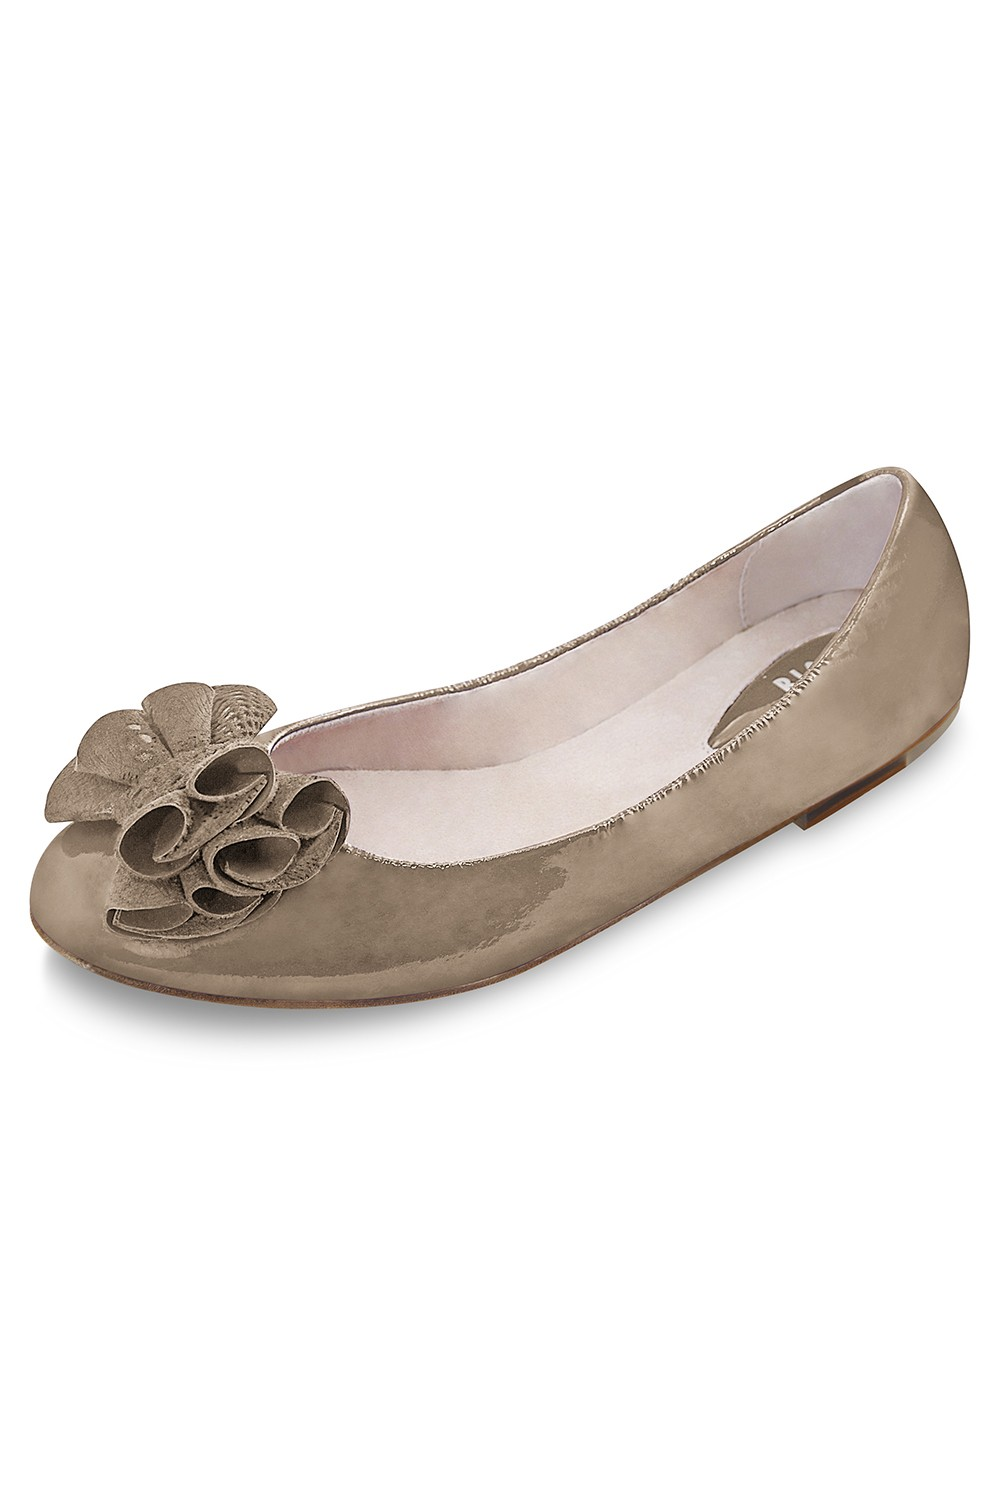 Aniceta Ladies Ballet Shoe Womens Fashion Shoes